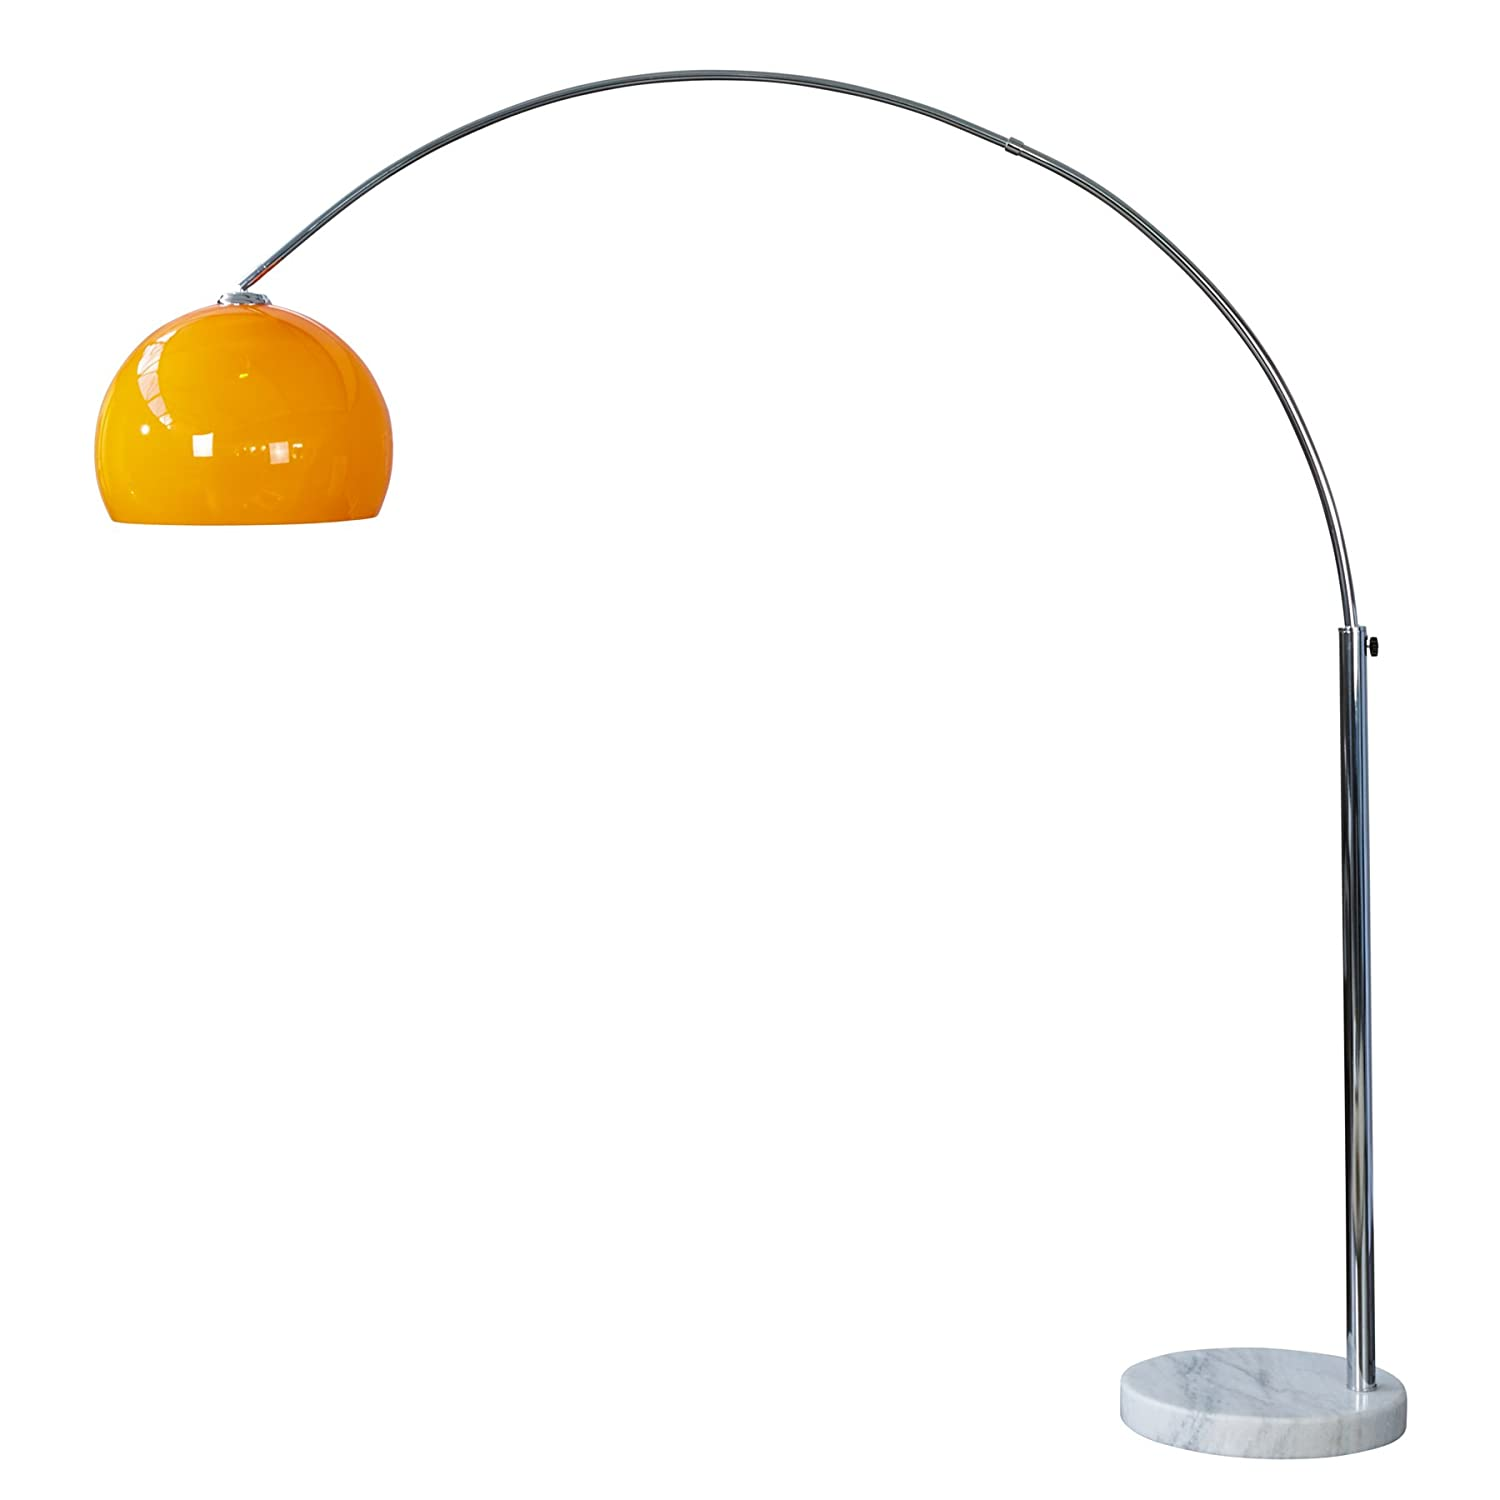 Design Bogenlampe LOUNGE DEAL Orange Marmorfuss 175 - 205cm ausziehbar